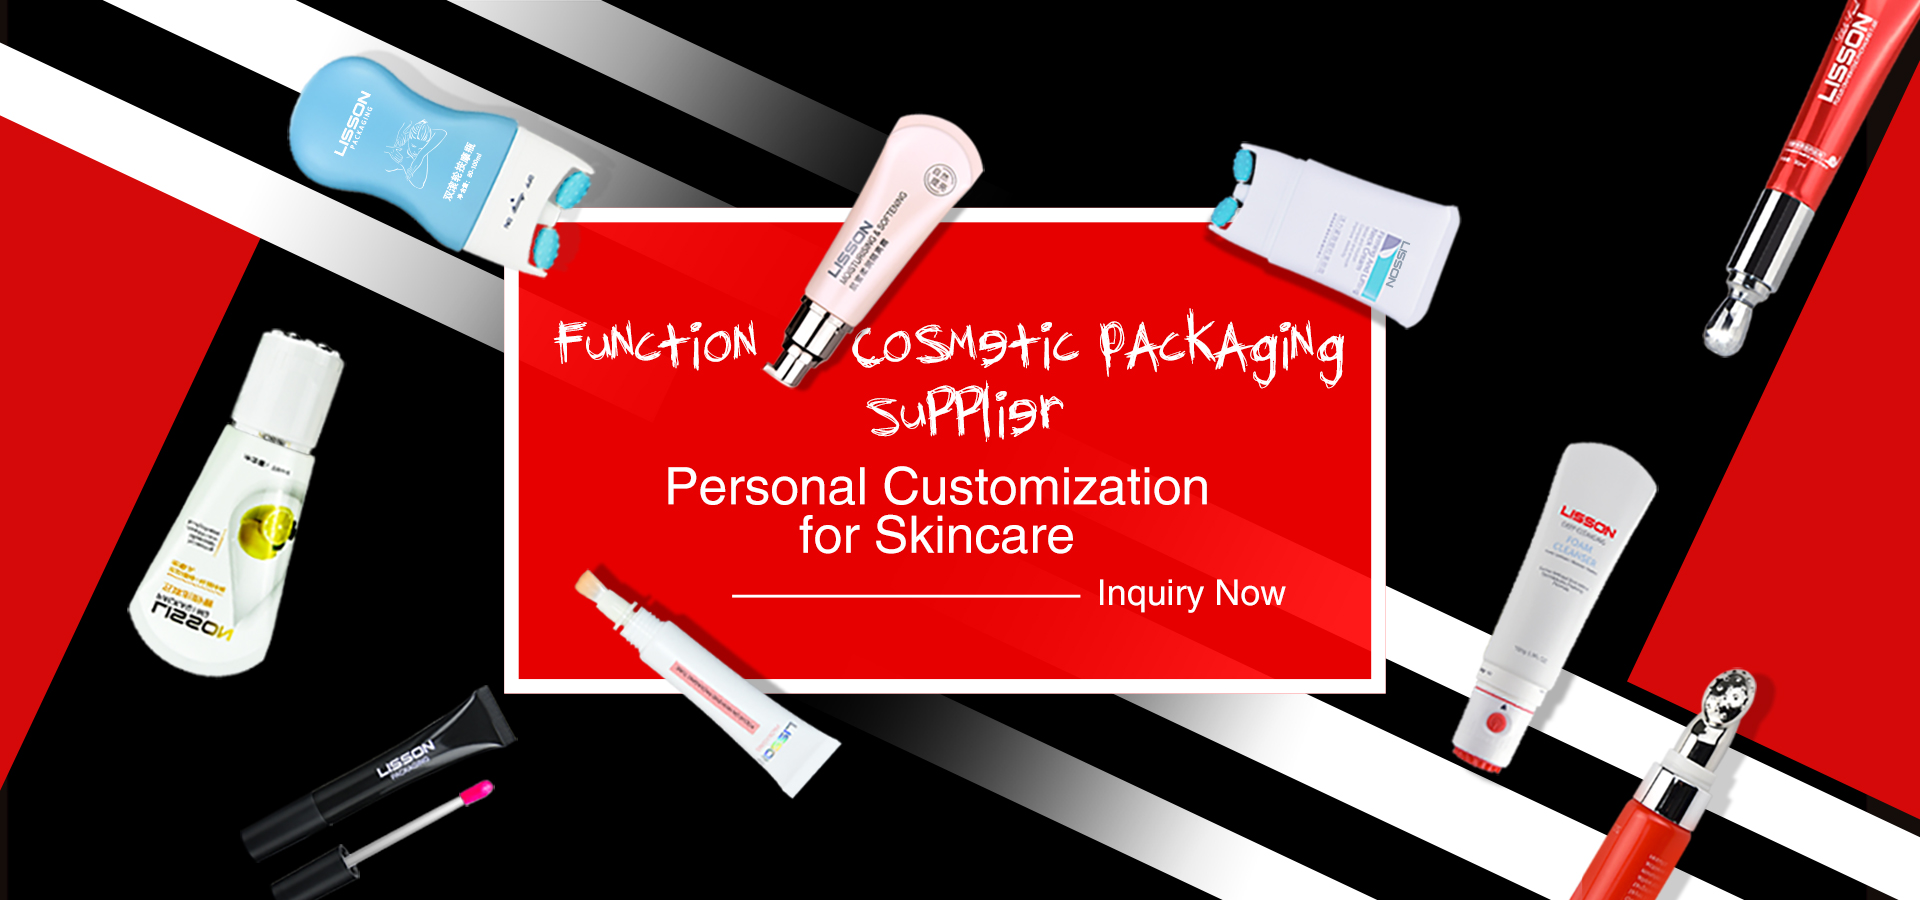 Function Cosmetic Packagings